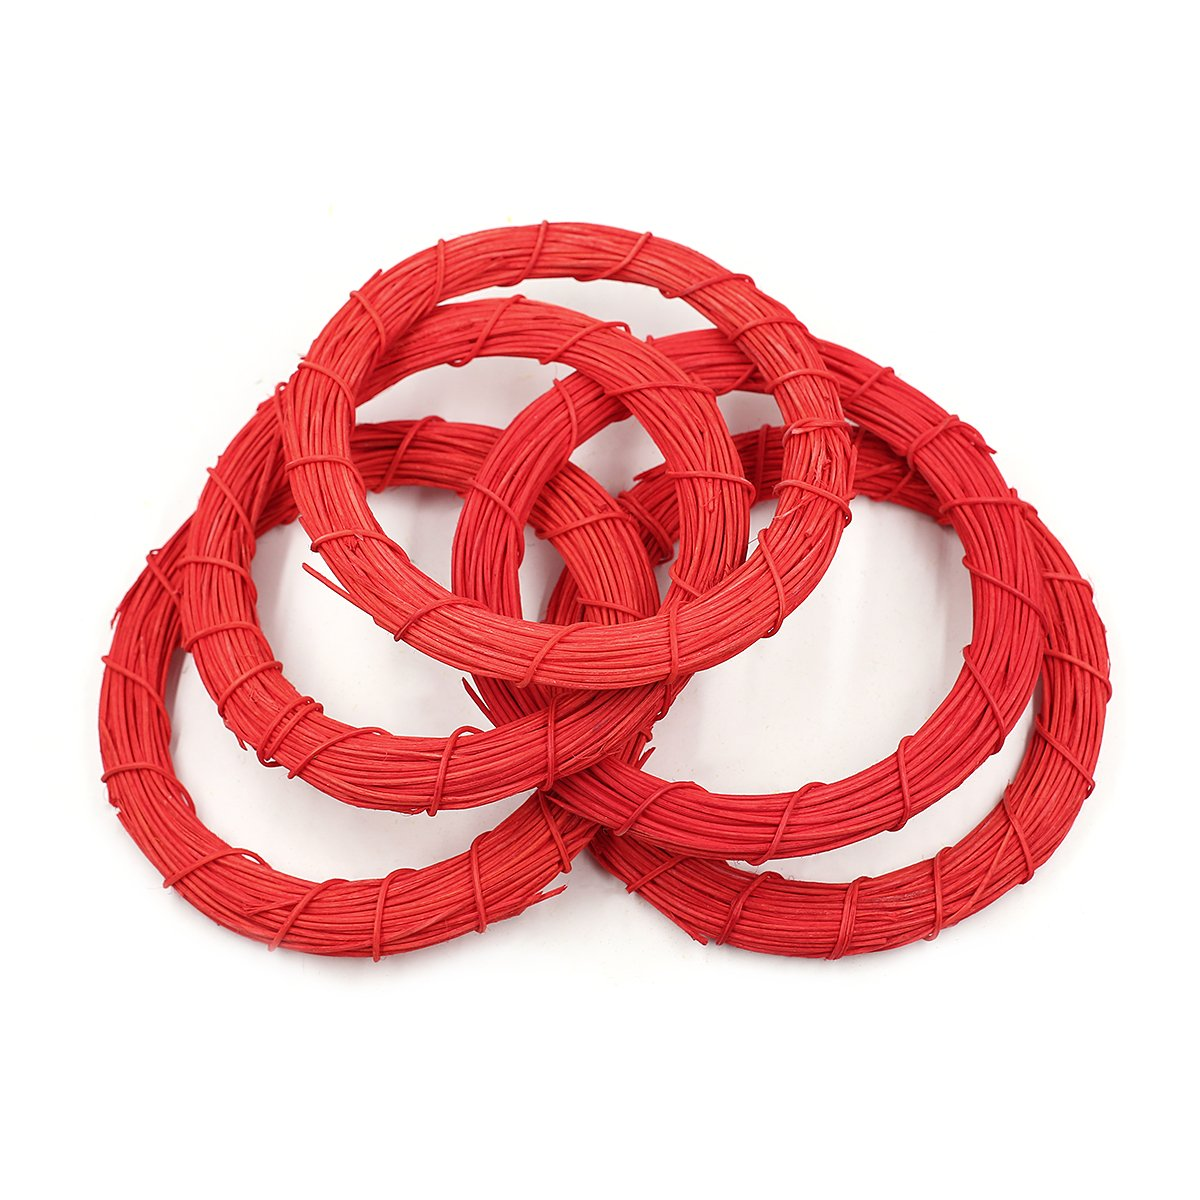 20Pcs 10cm/4inch Rattan Wreath Garland Decoration DIY Christmas Party Home Hanging Decoration Tong Yue